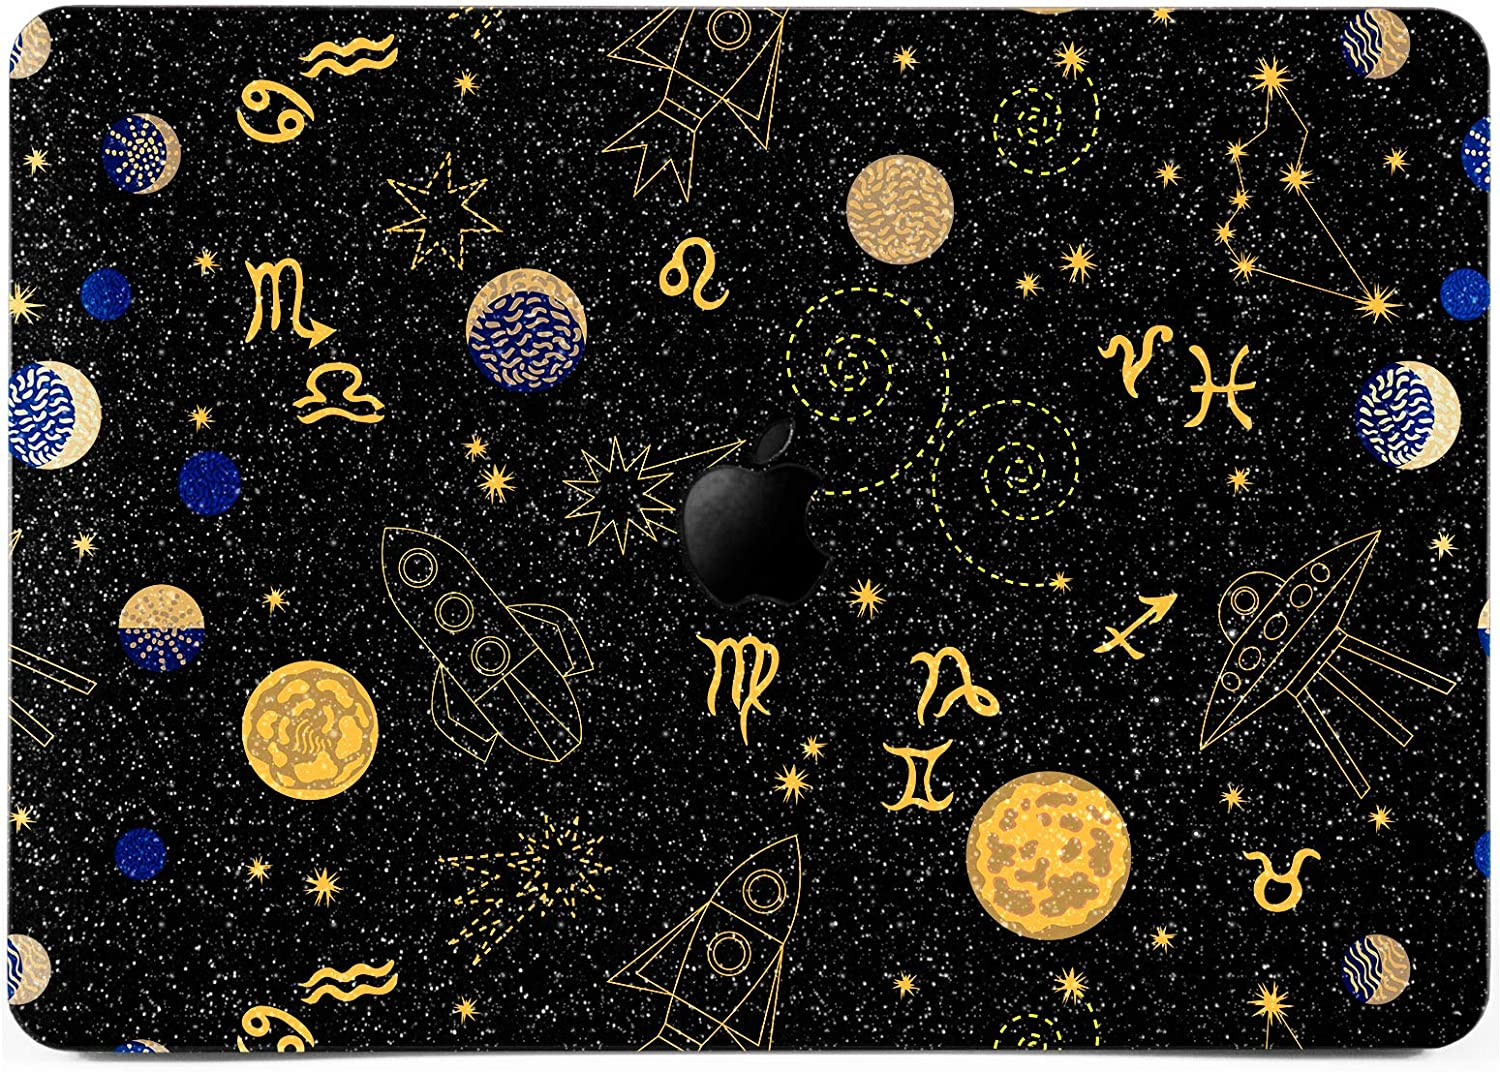 Lex Altern Glitter Case for Apple MacBook Air 13 inch Pro Mac 15 Retina 12 11 2020 2019 2018 2017 Zodiac Astrology Pattern Constellations Moon Bling Design Protective Laptop Cover Shiny Women Black